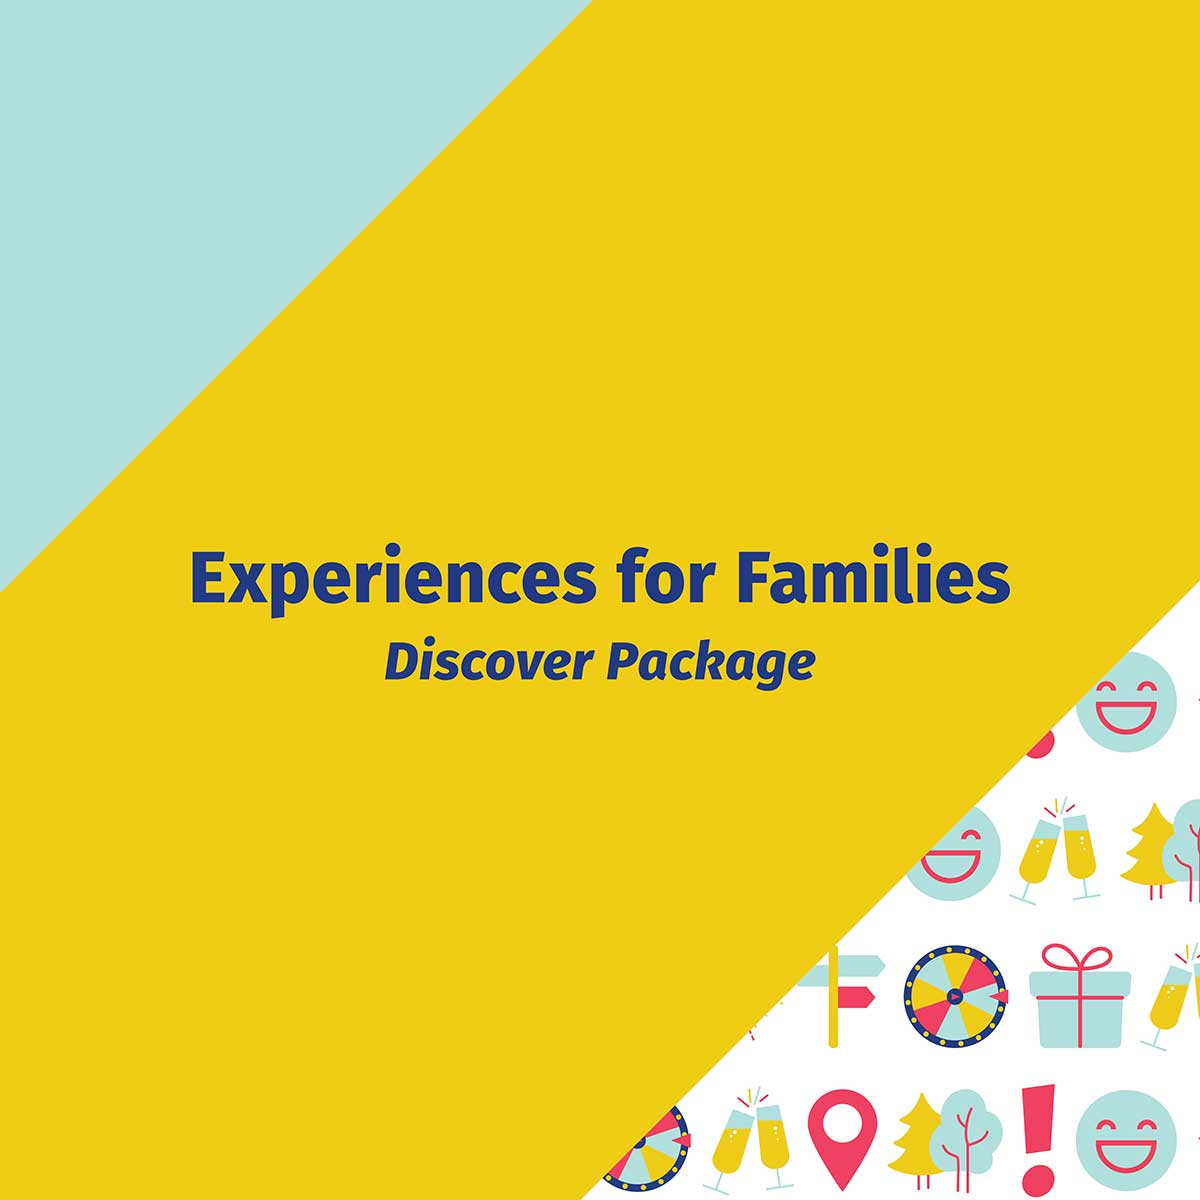 Experiences-for-families---discover